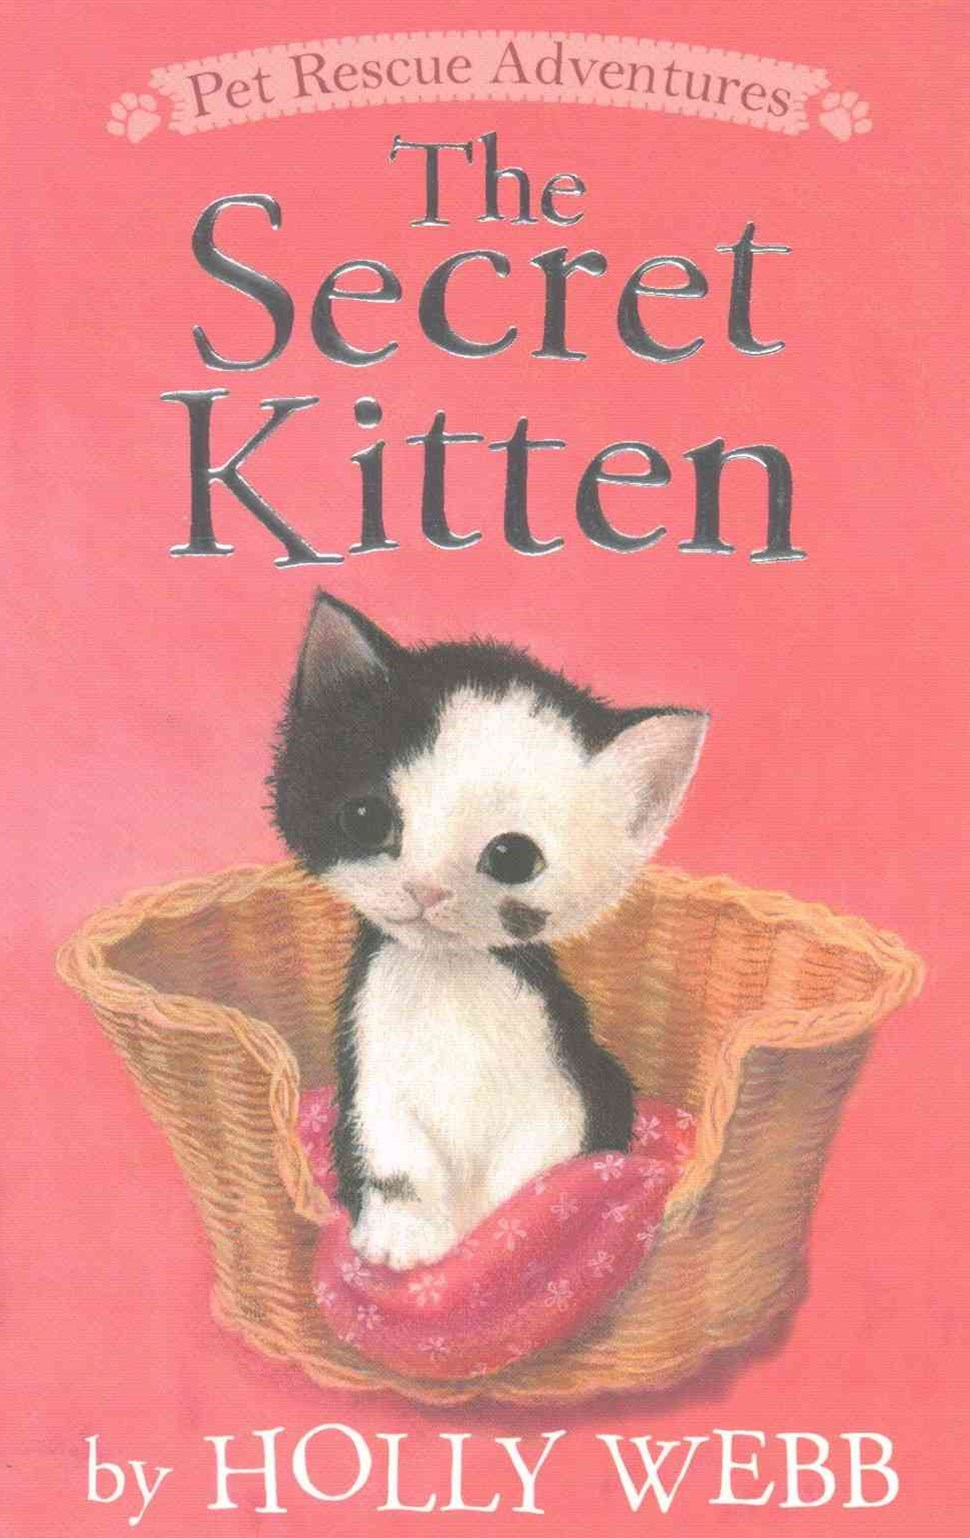 The Secret Kitten